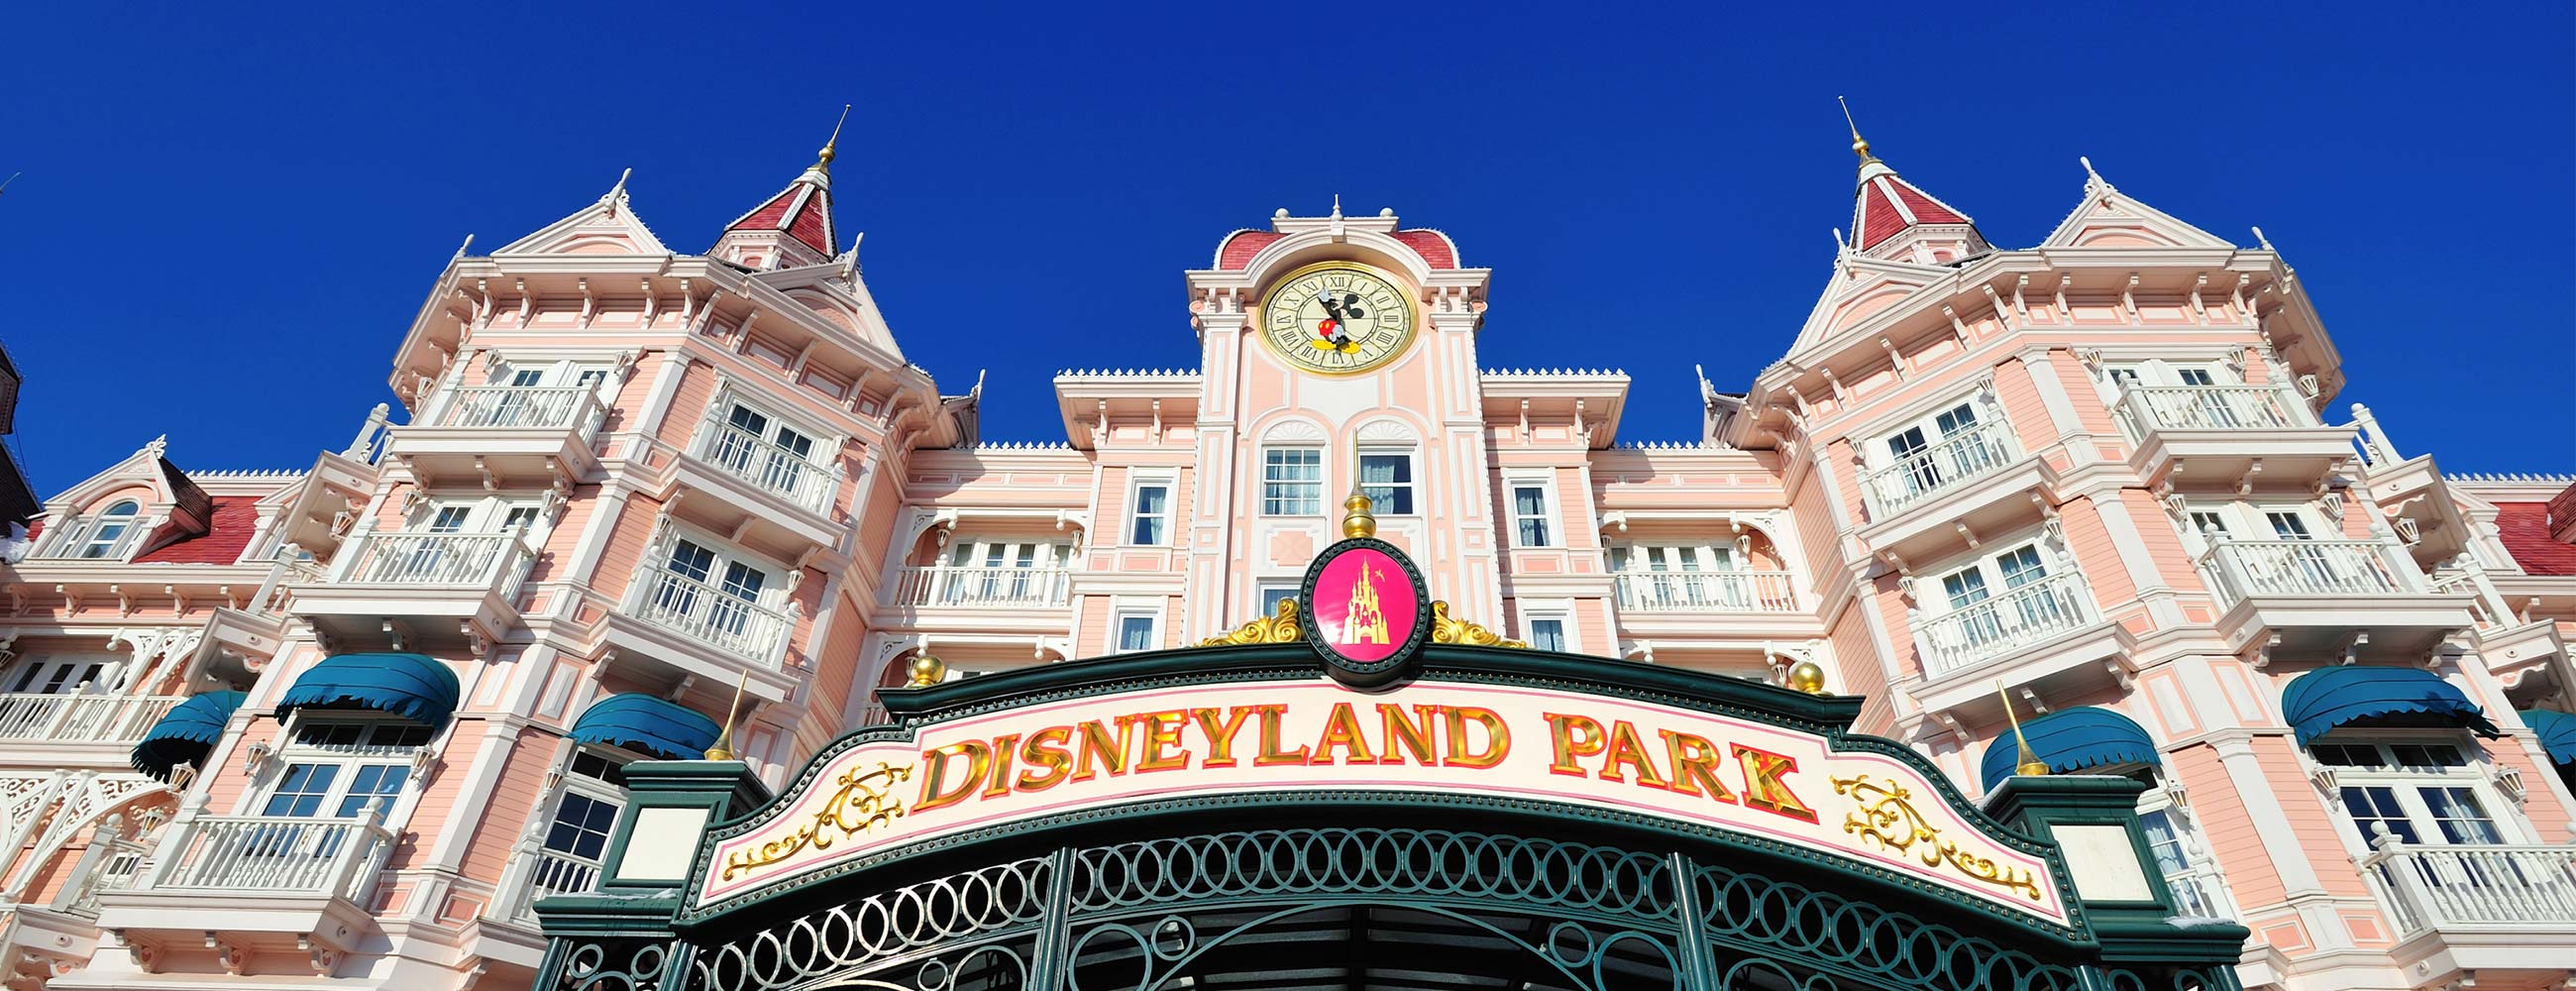 magical-disneyland-hotels-feature-image